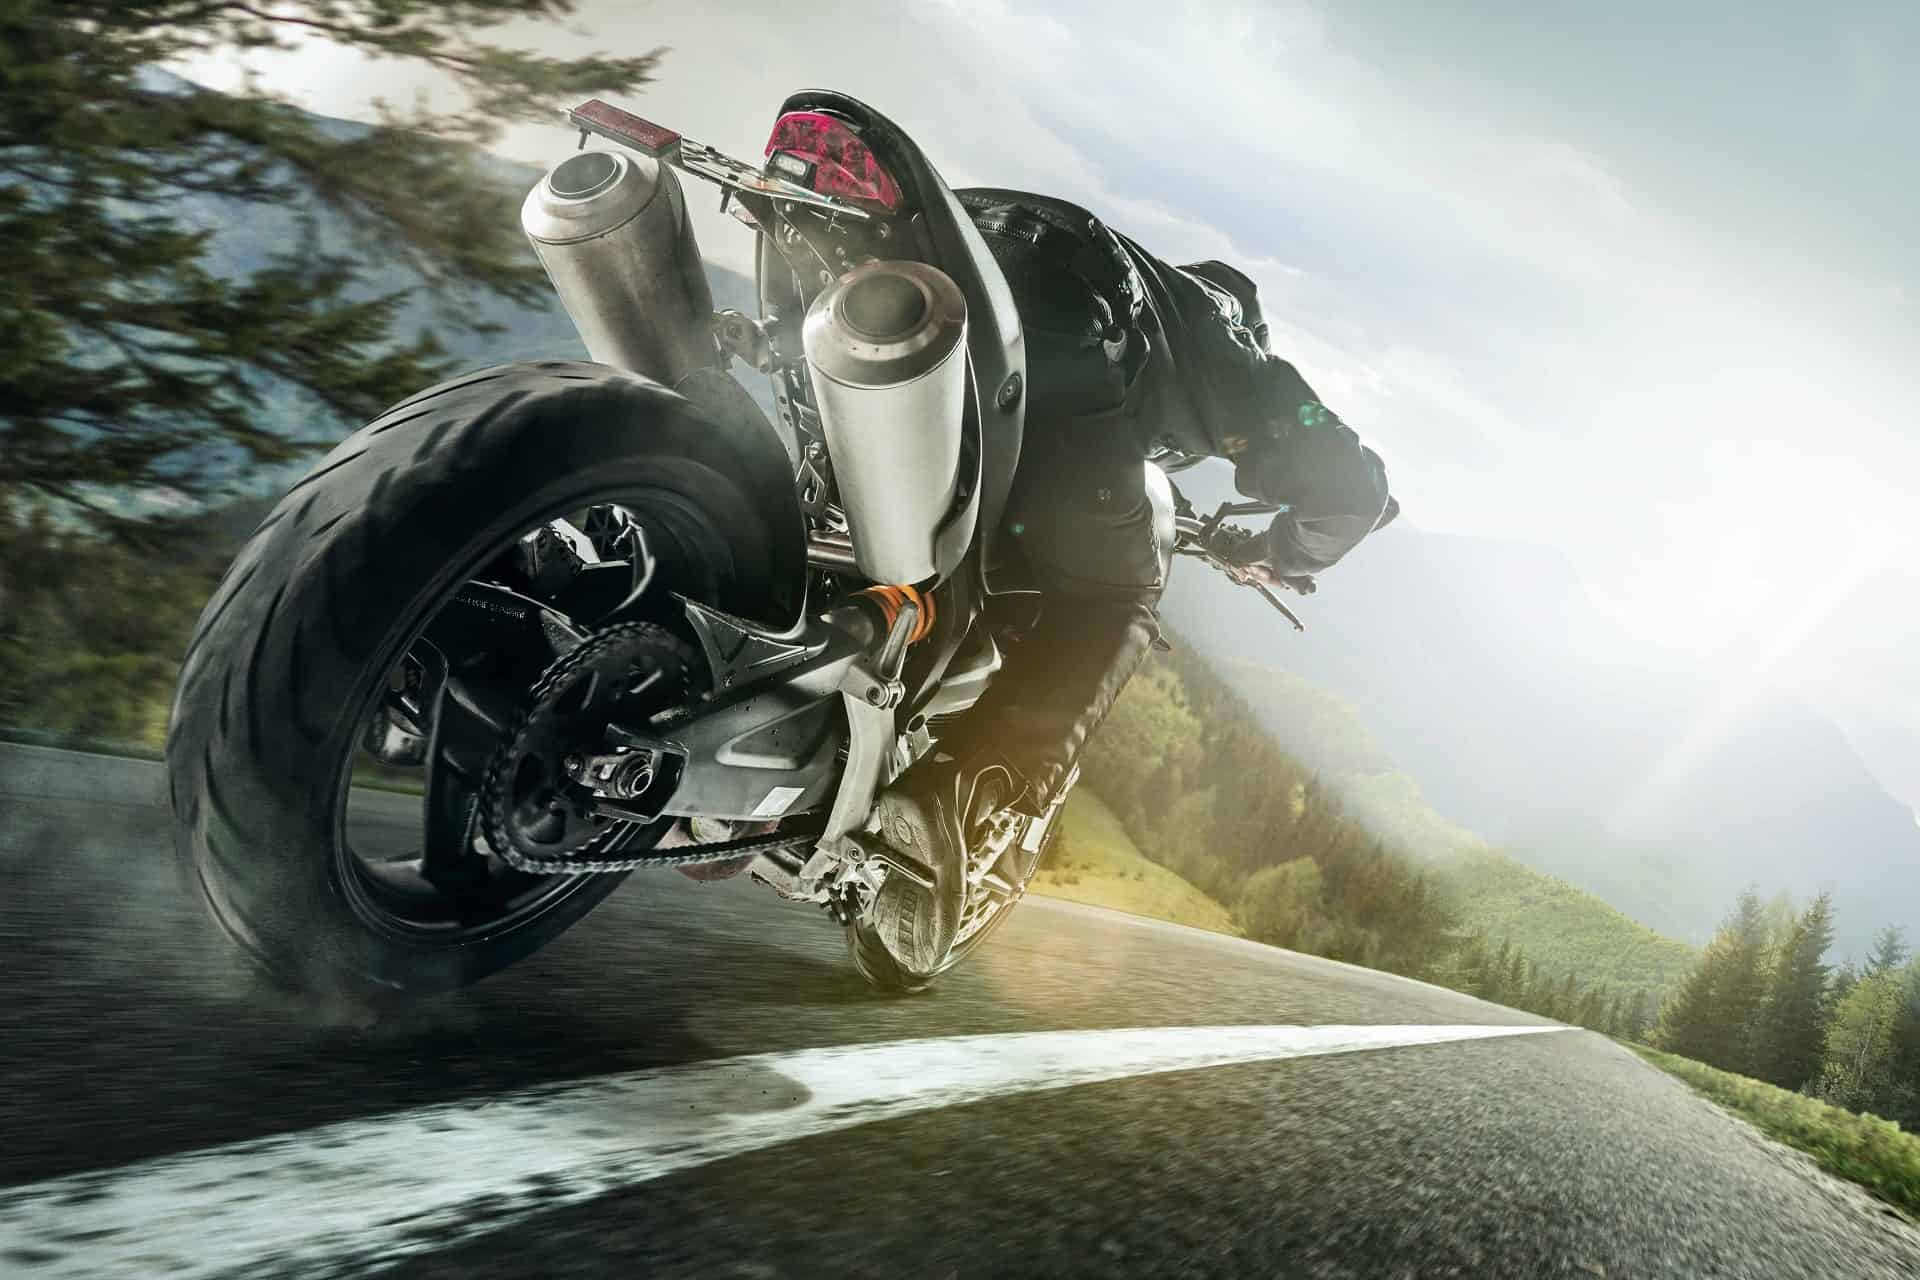 stock-photo-championship-of-motocross-side-view-of-sportsmen-driving-motorcycle-797080582-e1629780854153-min